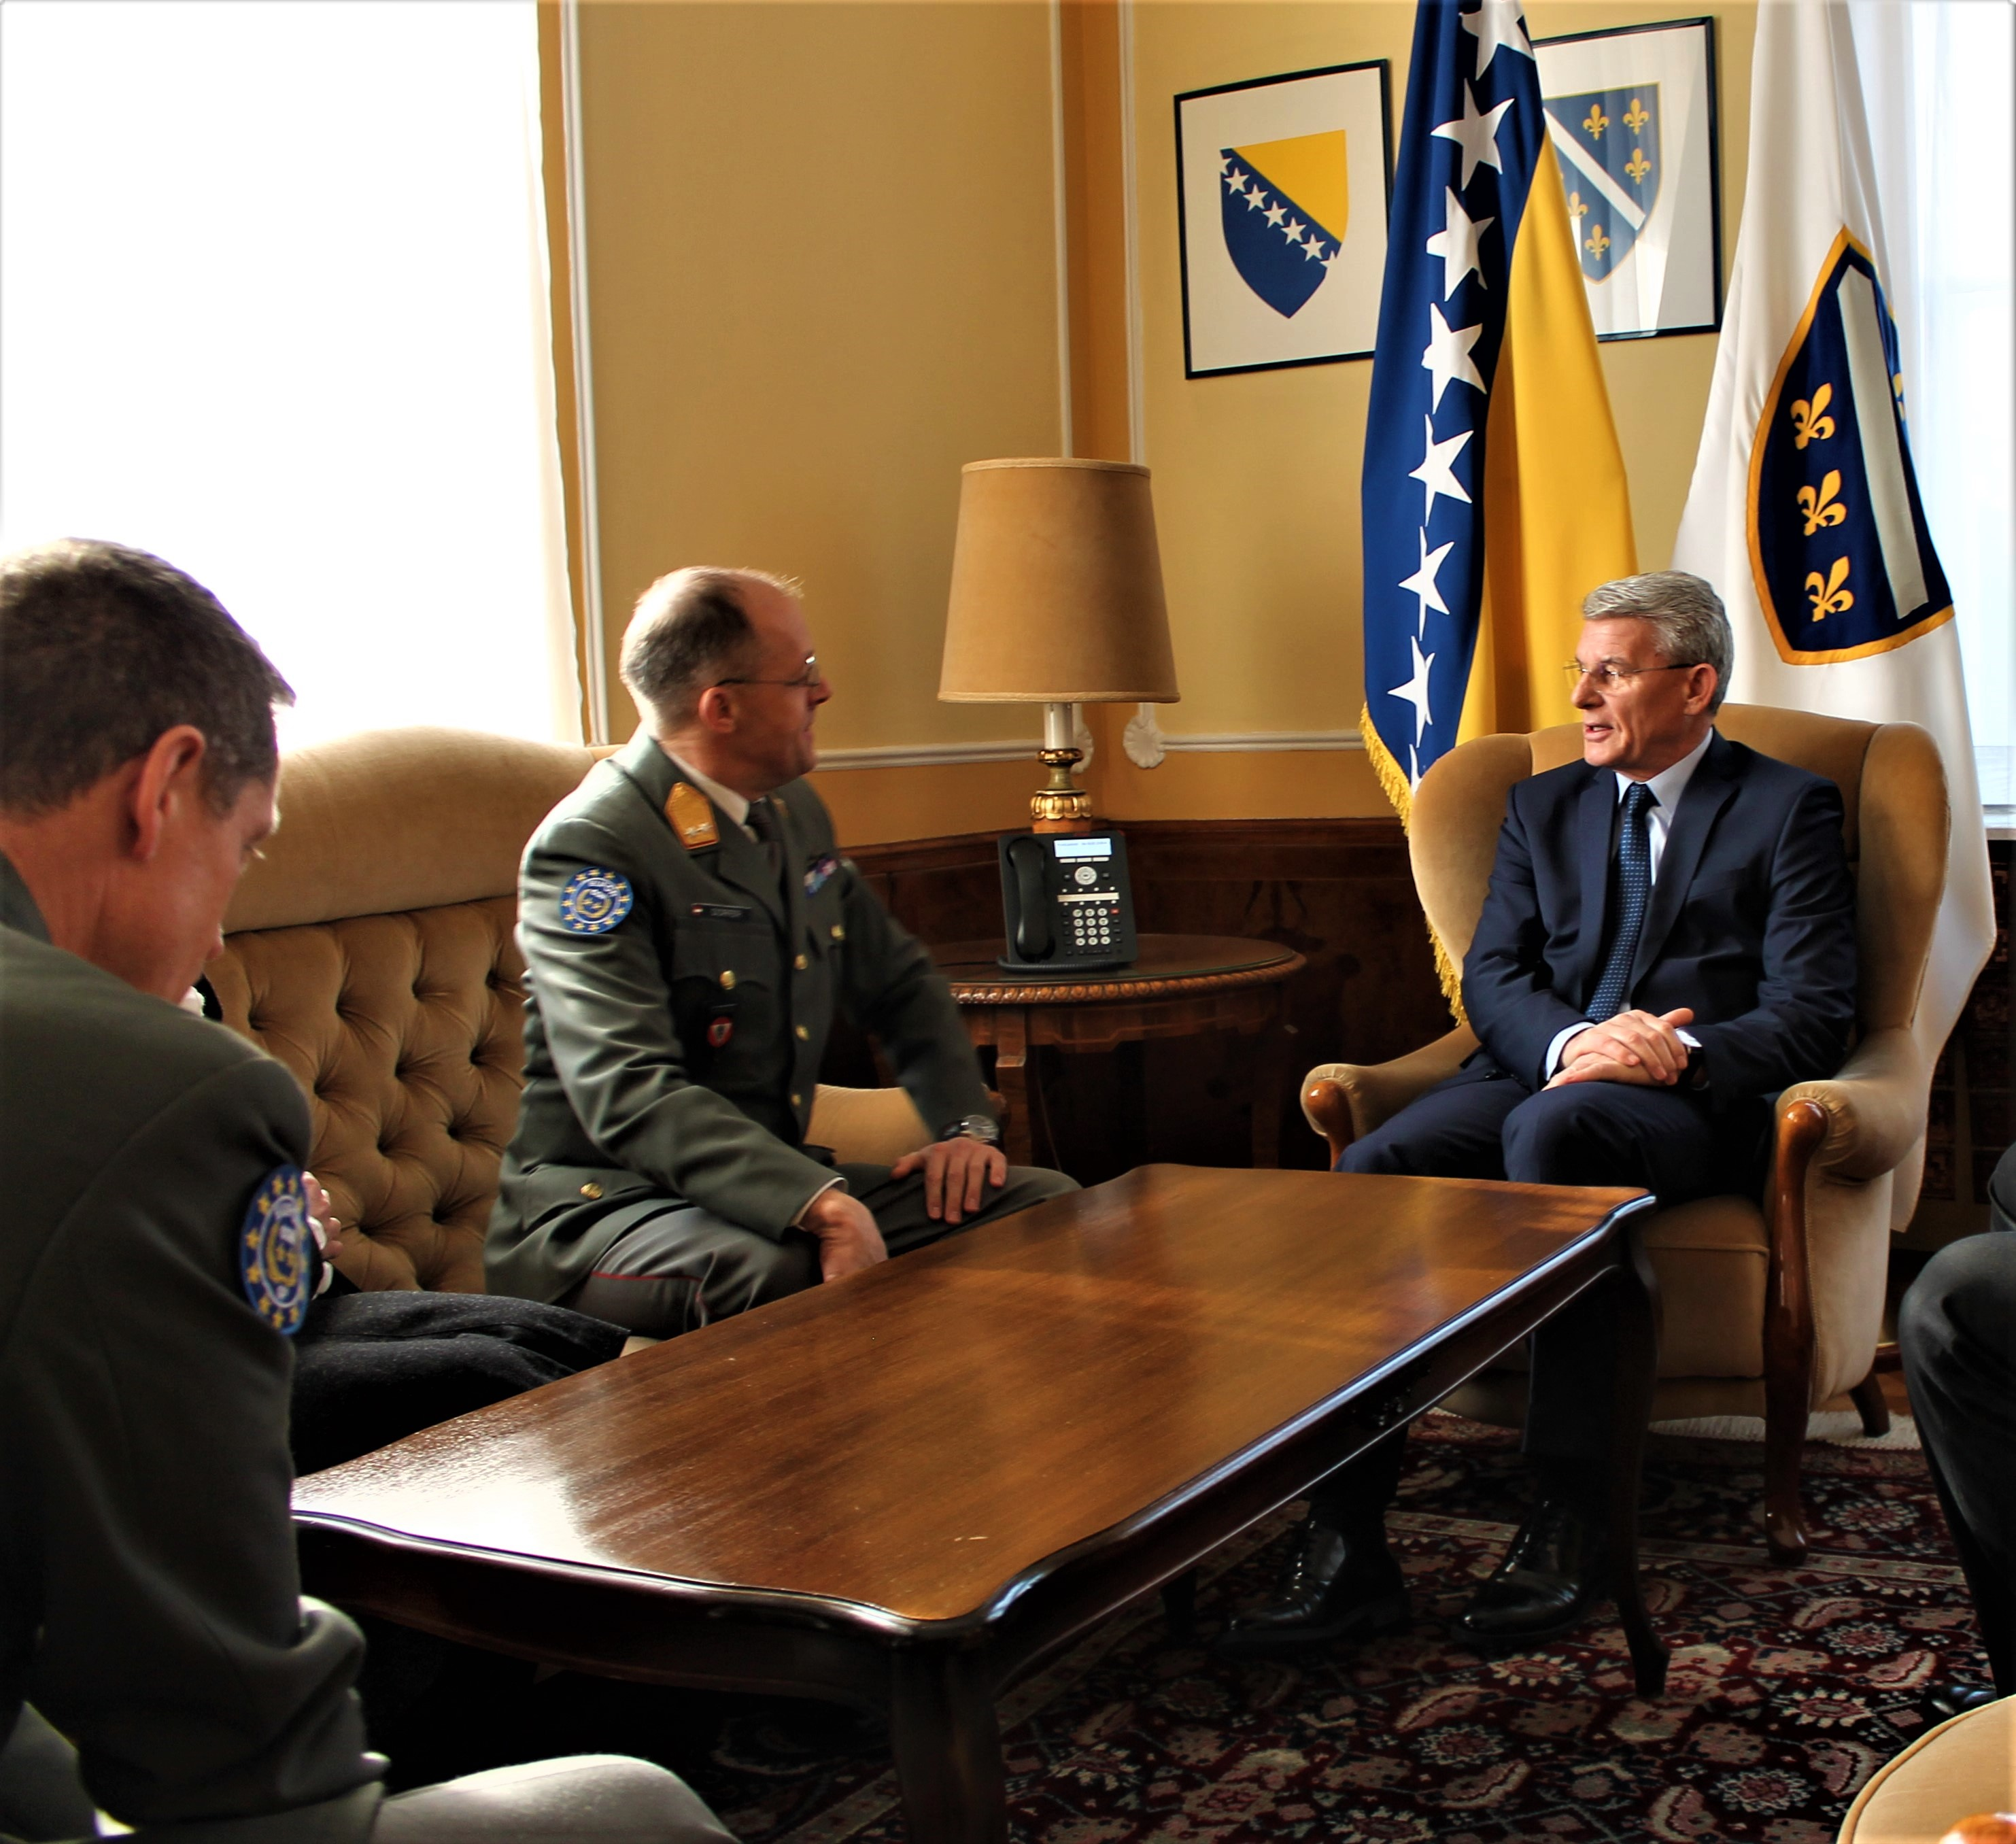 BiH Presidency Member Šefik Džaferović received Commander EUFOR